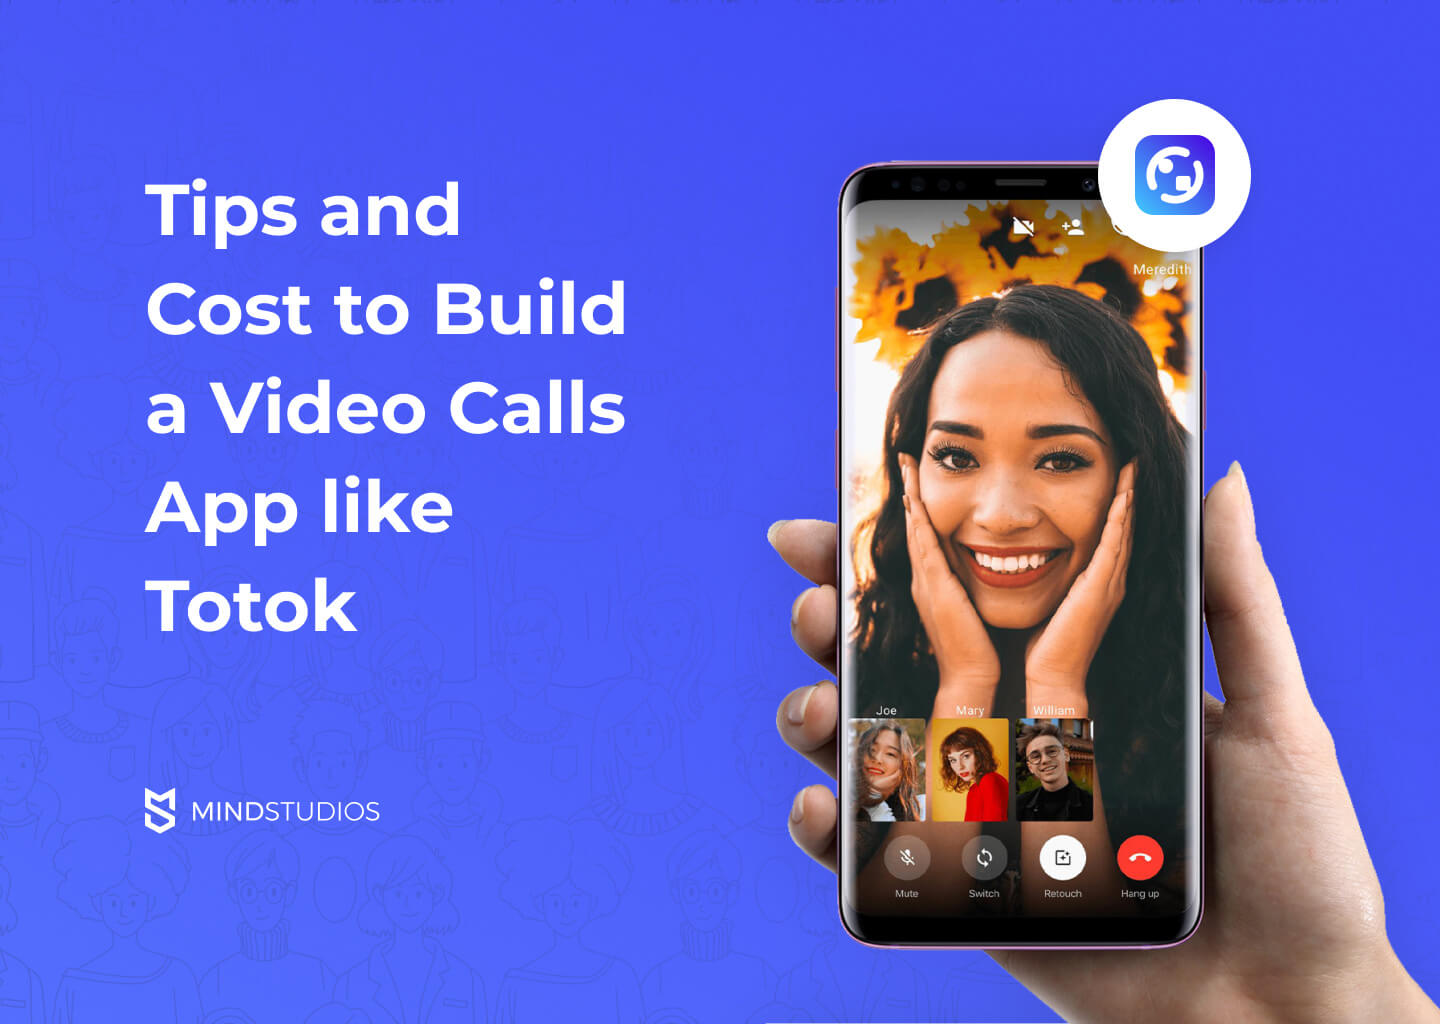 Tips and Cost to Build a Video Calls App like Totok